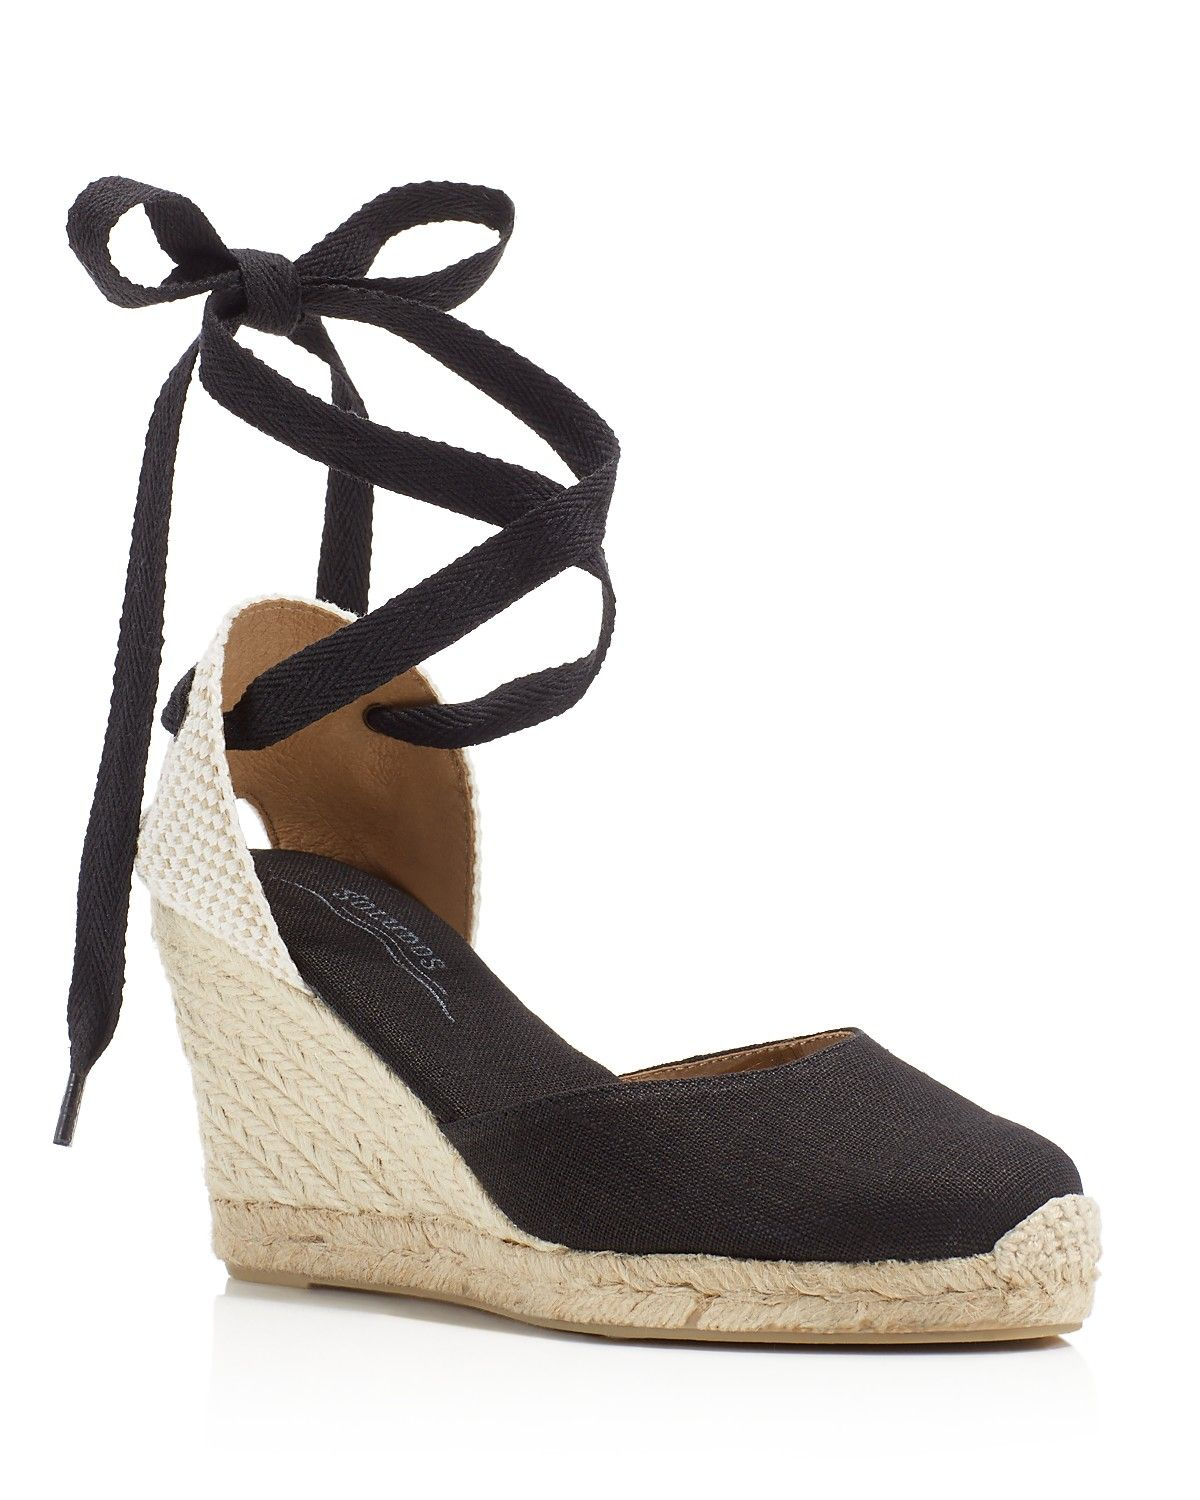 745be3cd6f55 The perfect day-to-night pair for warm-weather strolling